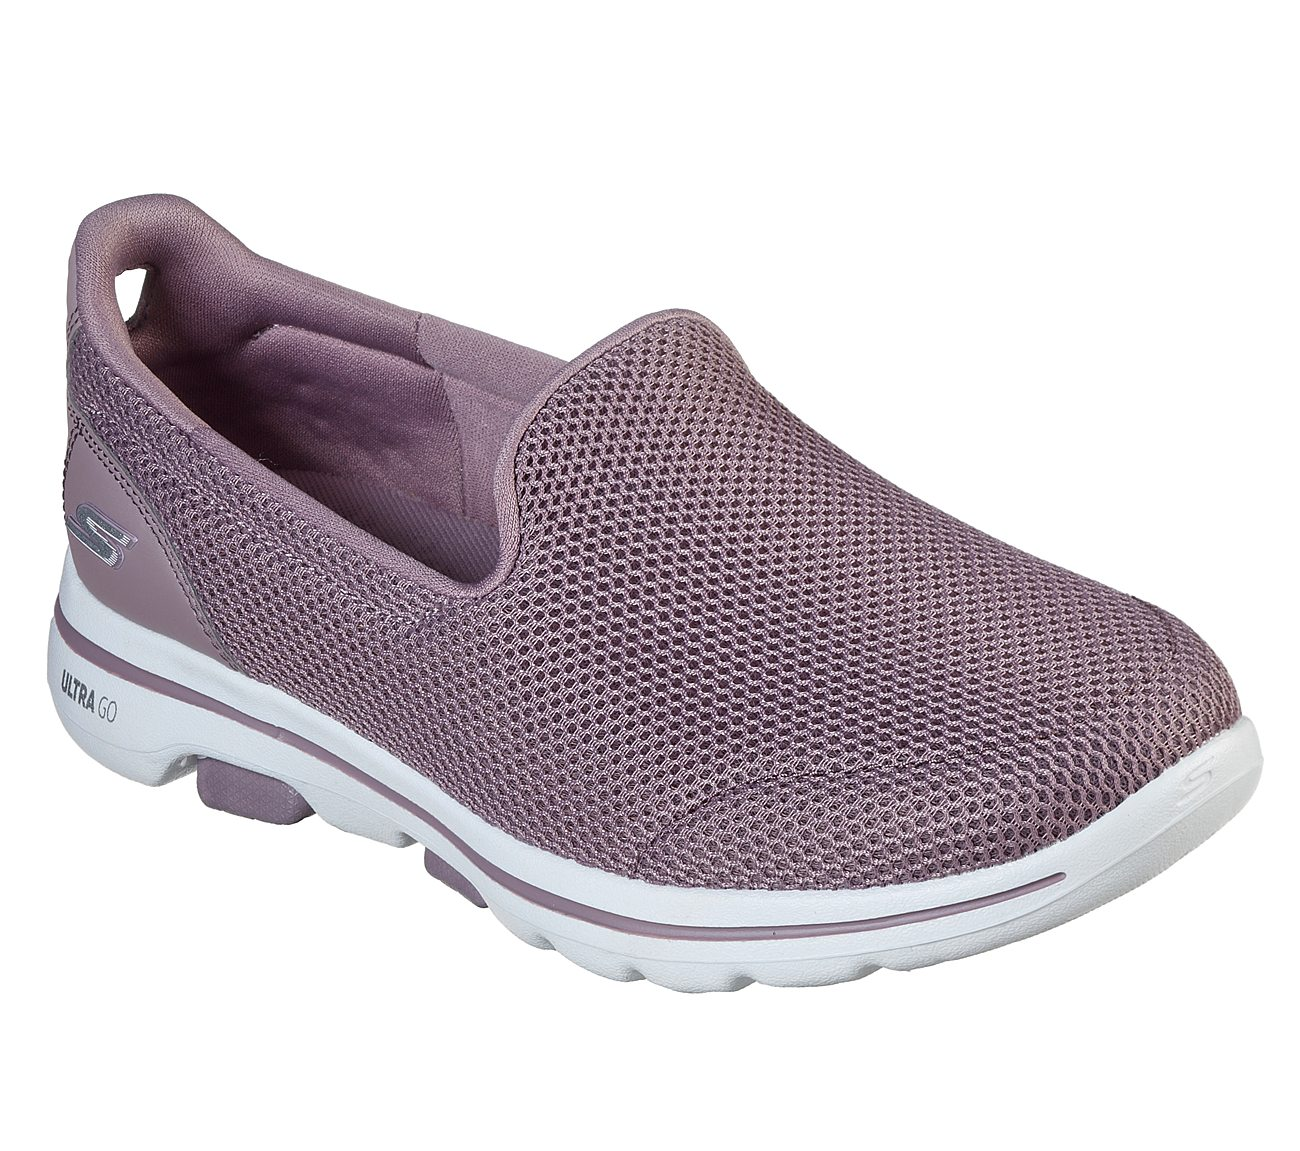 skechers refund policy